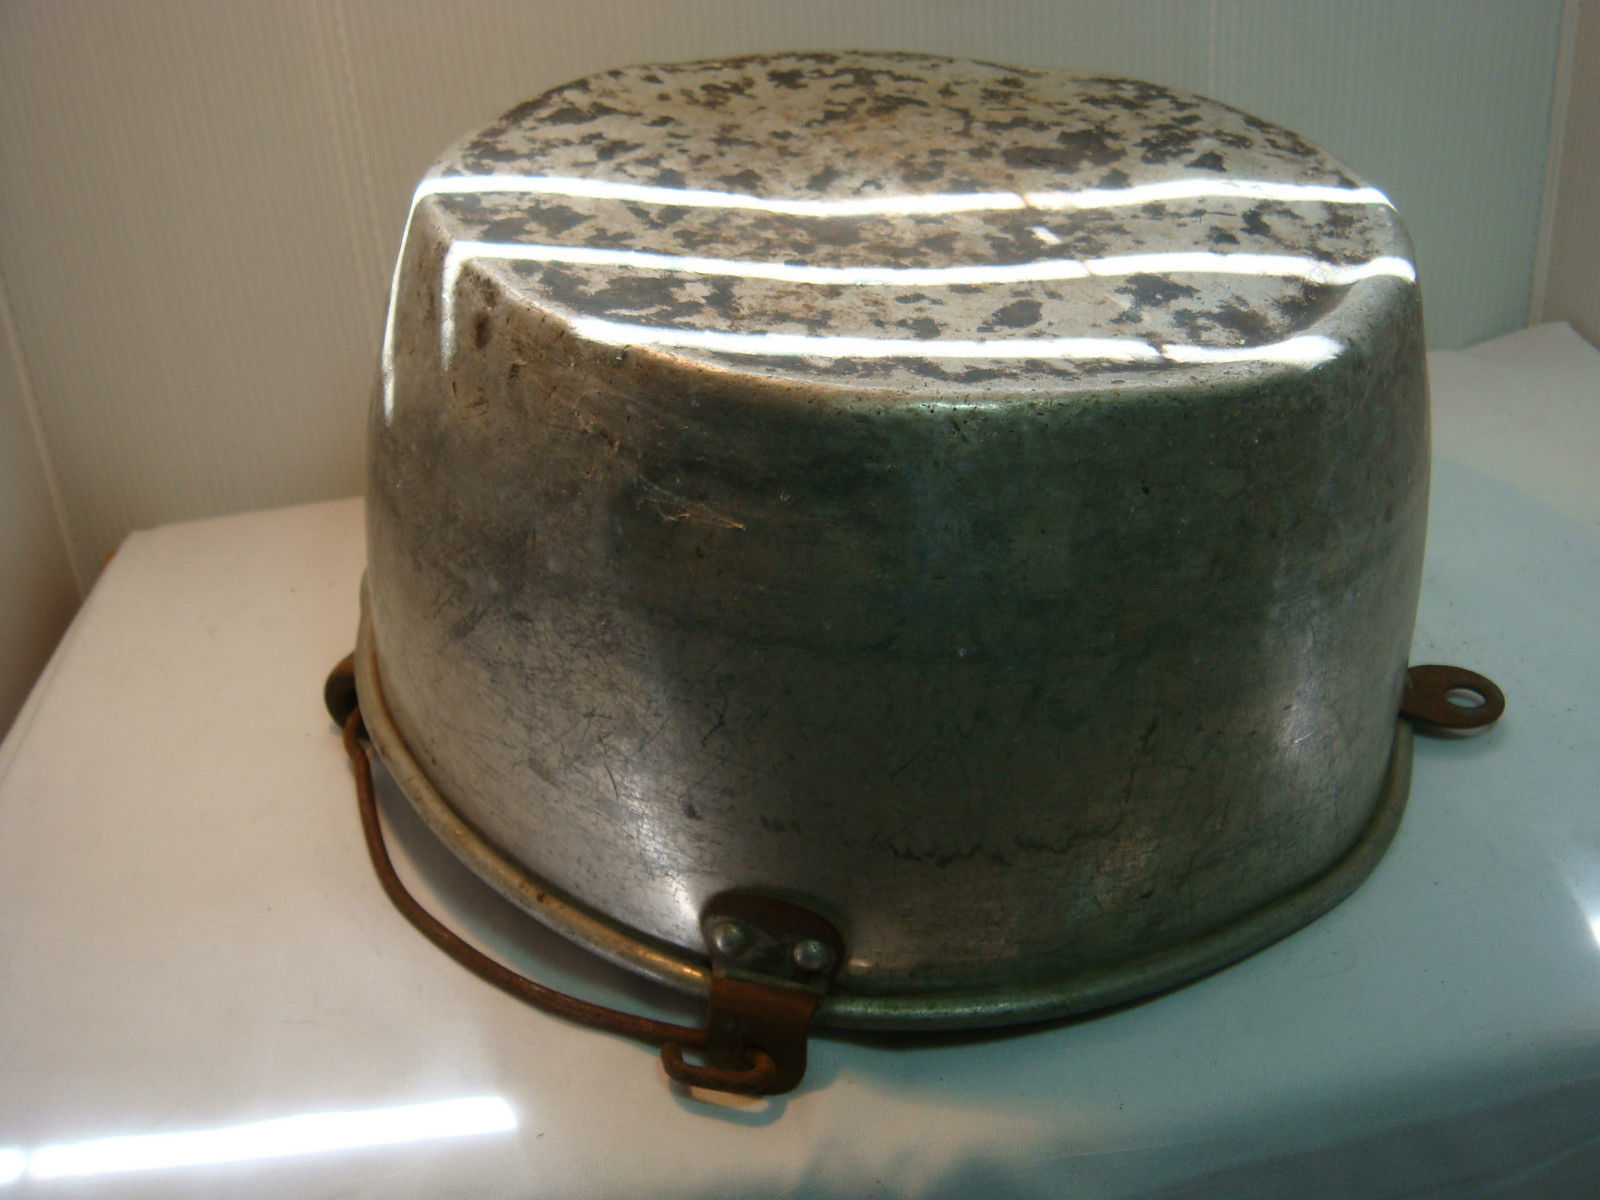 VINTAGE MILKING PAIL - KITCHEN PAN - ALUMINUM - VERY USED & VERY OLD image 5